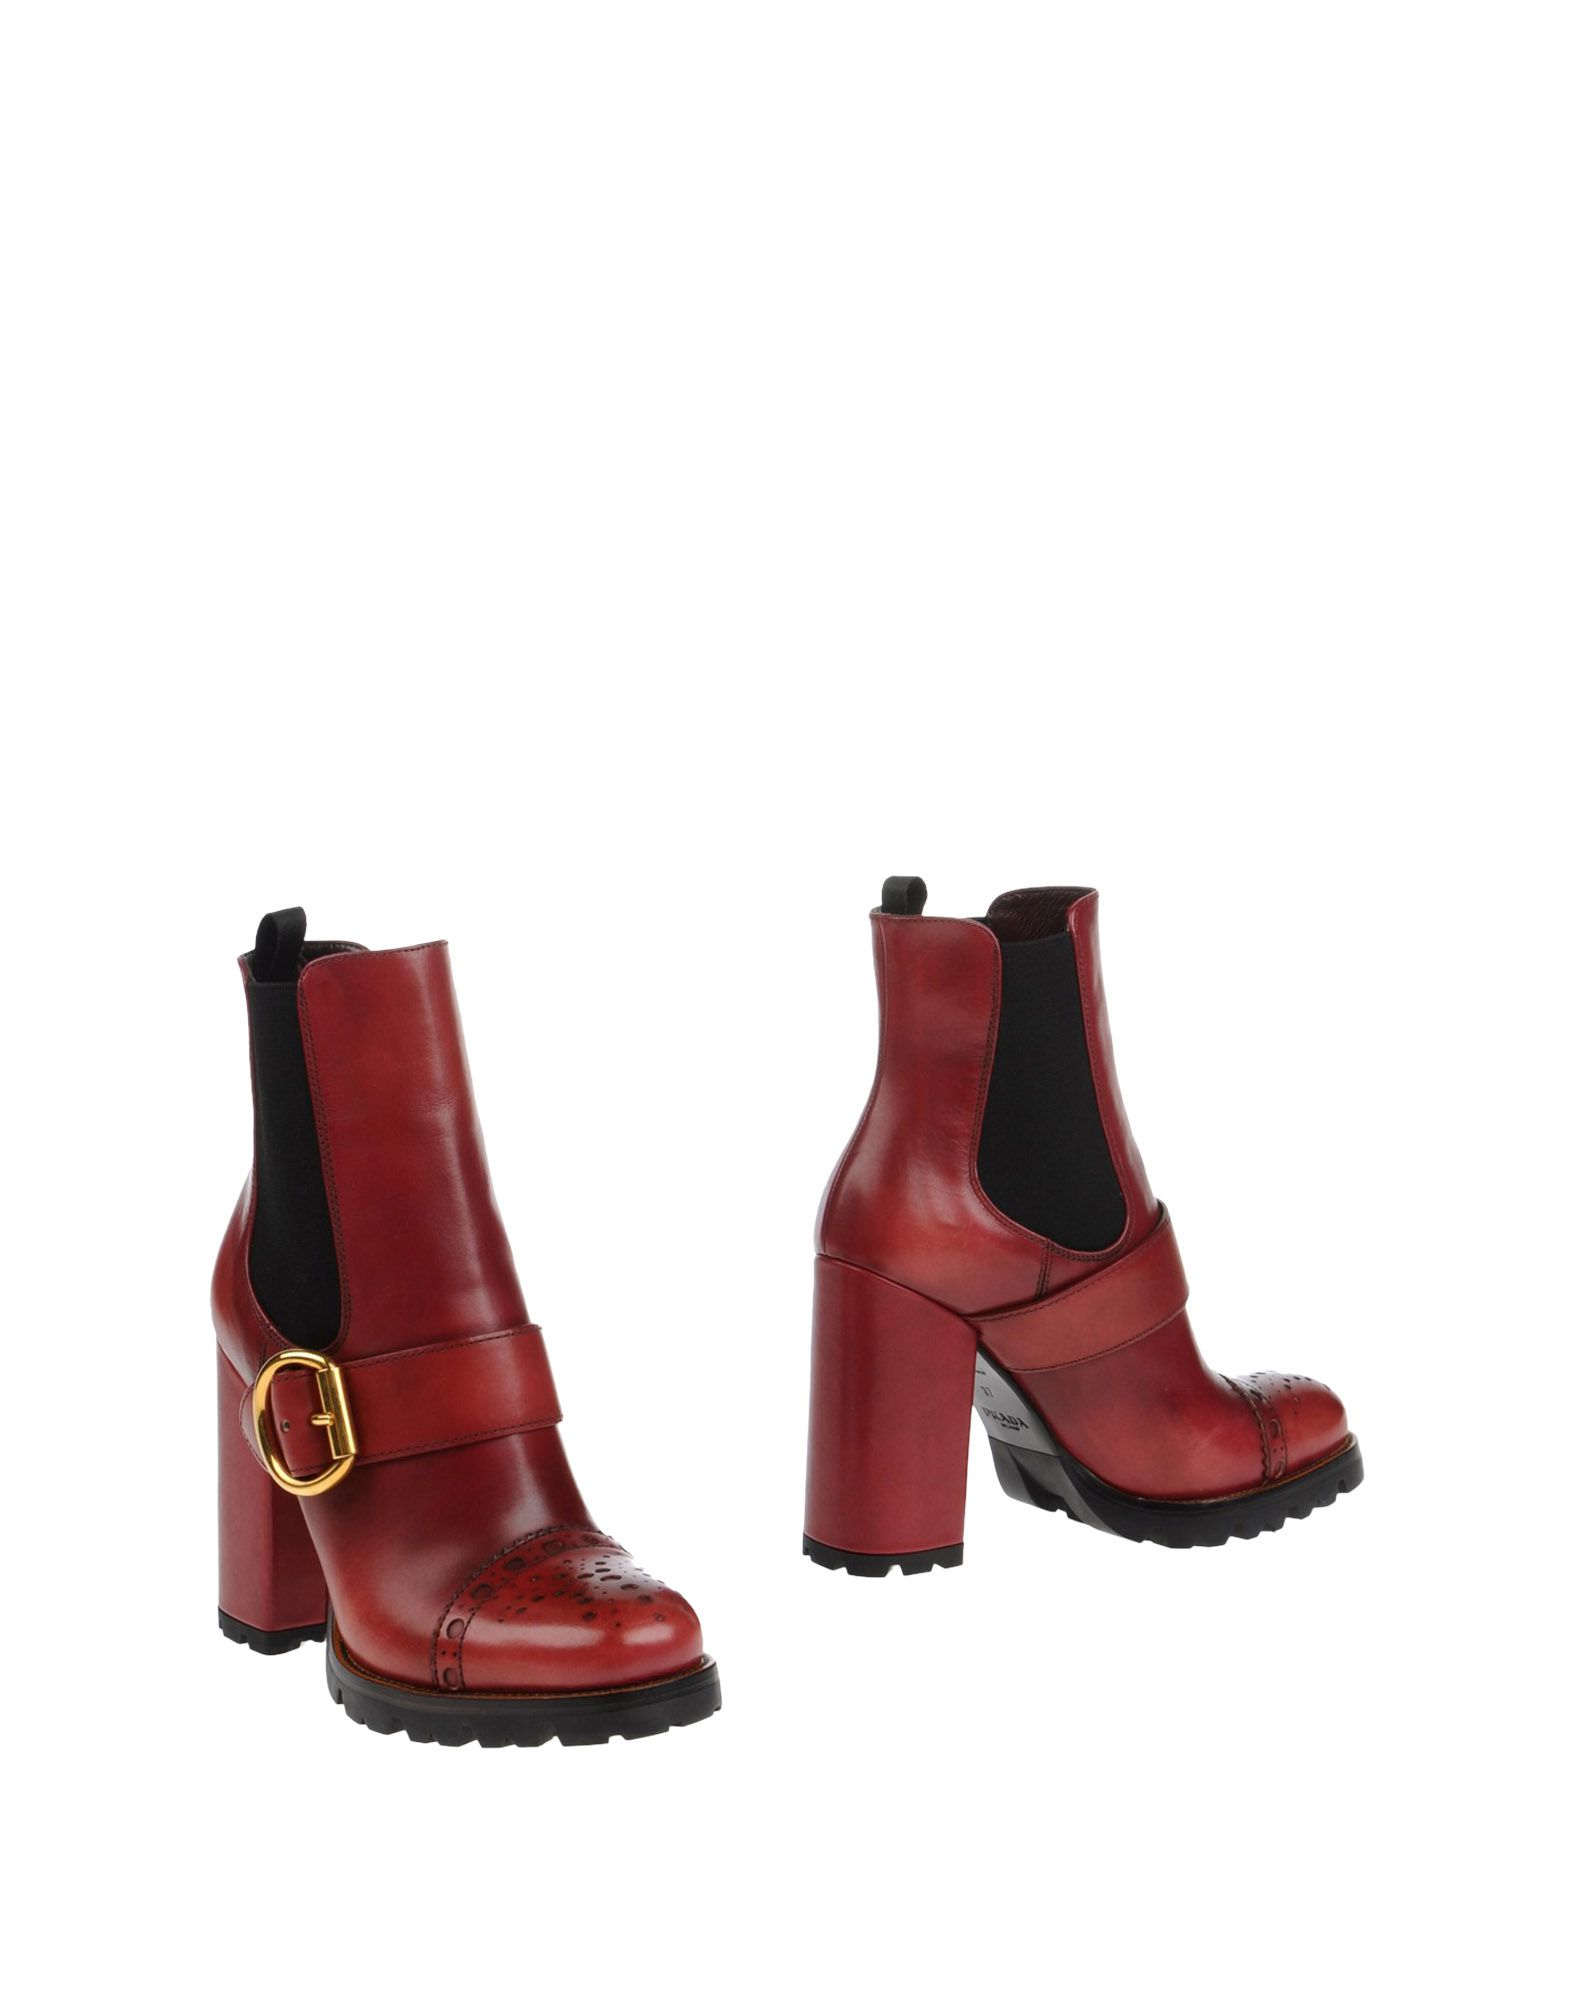 Prada Ankle Boot Boots - Women Prada Ankle Boots Boot online on  United Kingdom - 11237997HK 4c2625